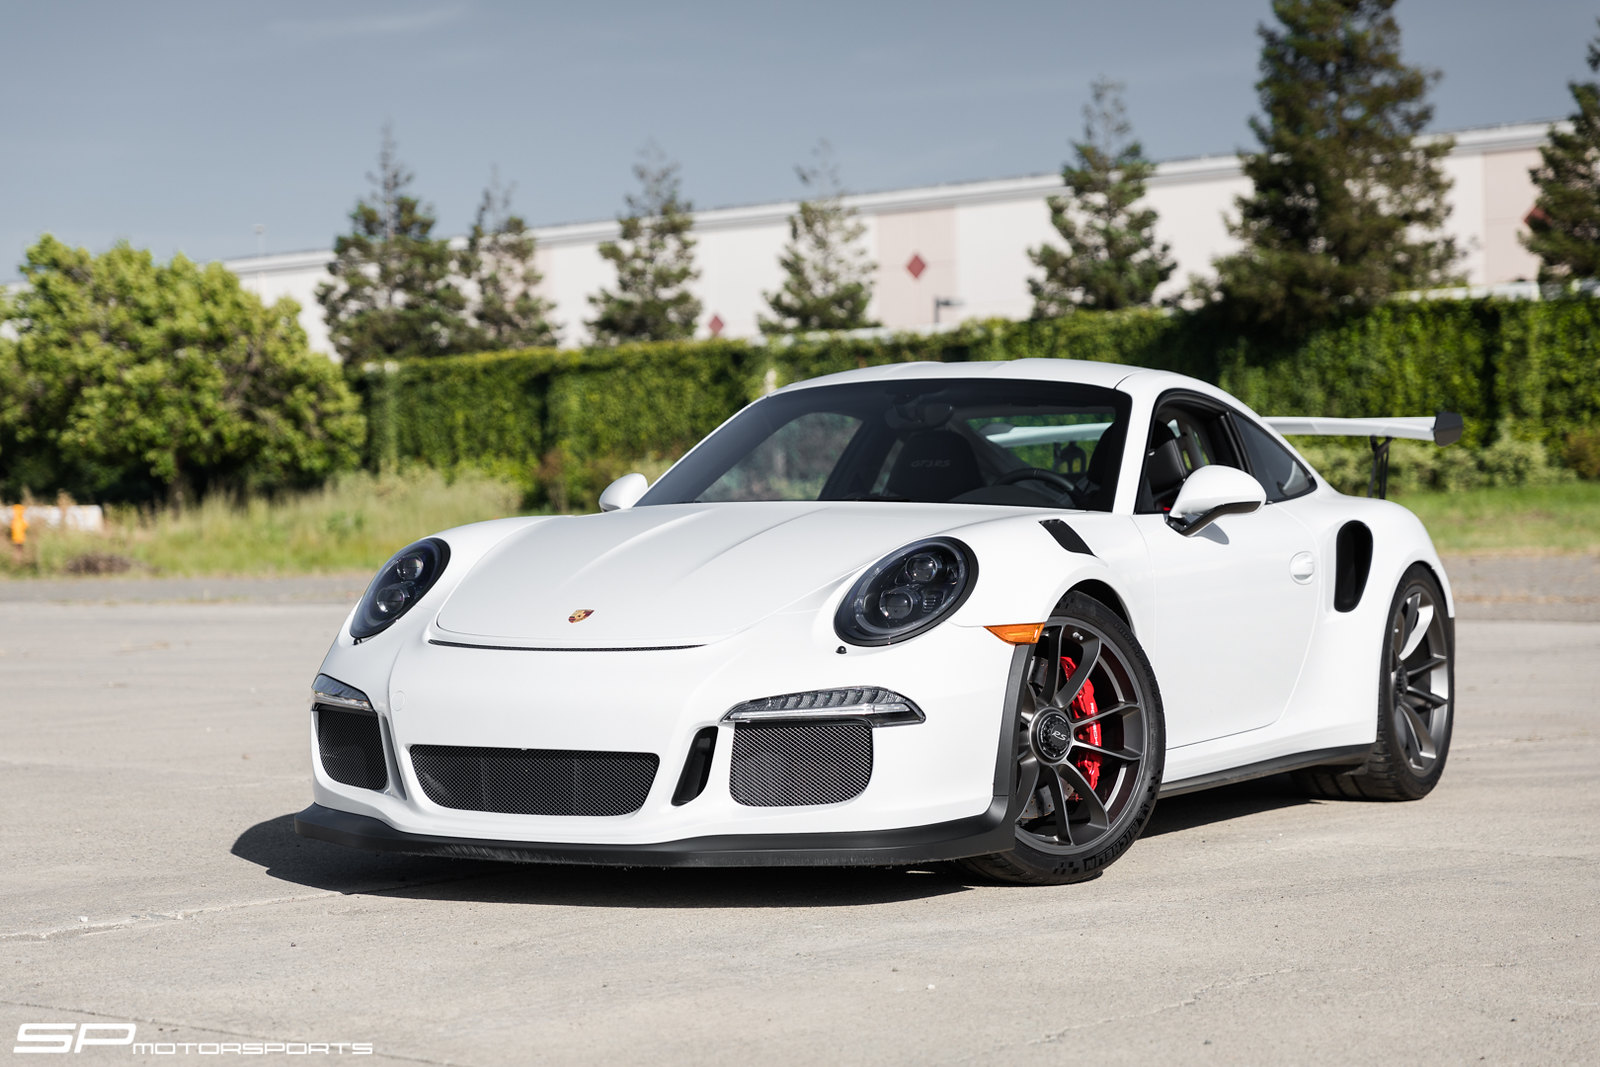 sp motorsport 39 s white porsche 991 gt3 rs bbi roll bar and harness safety package rennlist. Black Bedroom Furniture Sets. Home Design Ideas